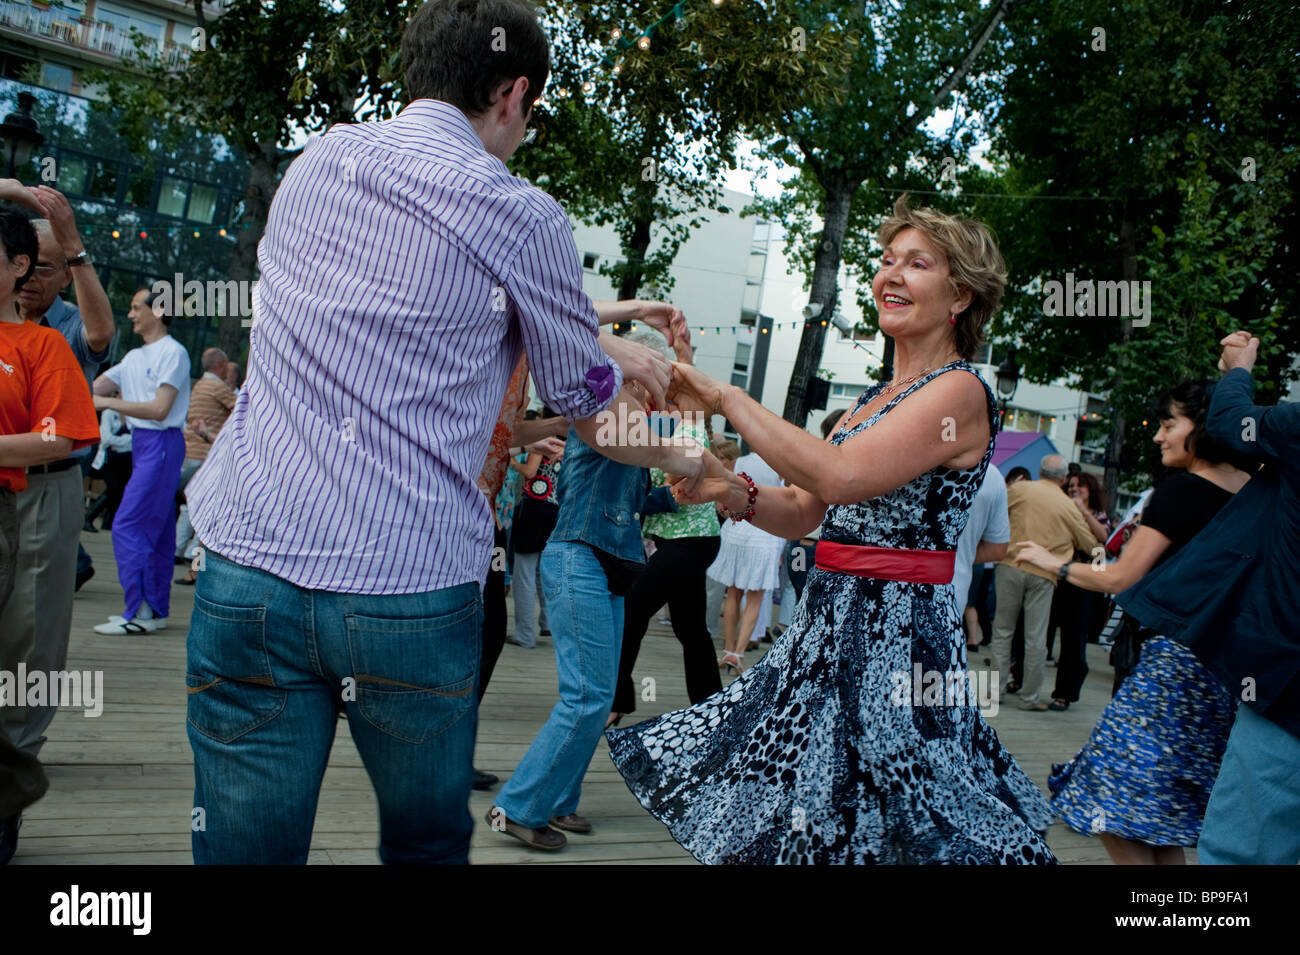 Paris, France, Adult Couples, Rock n Roll Style Street Swing Dancing at Paris Plages, River Seine adult extracurricular - Stock Image